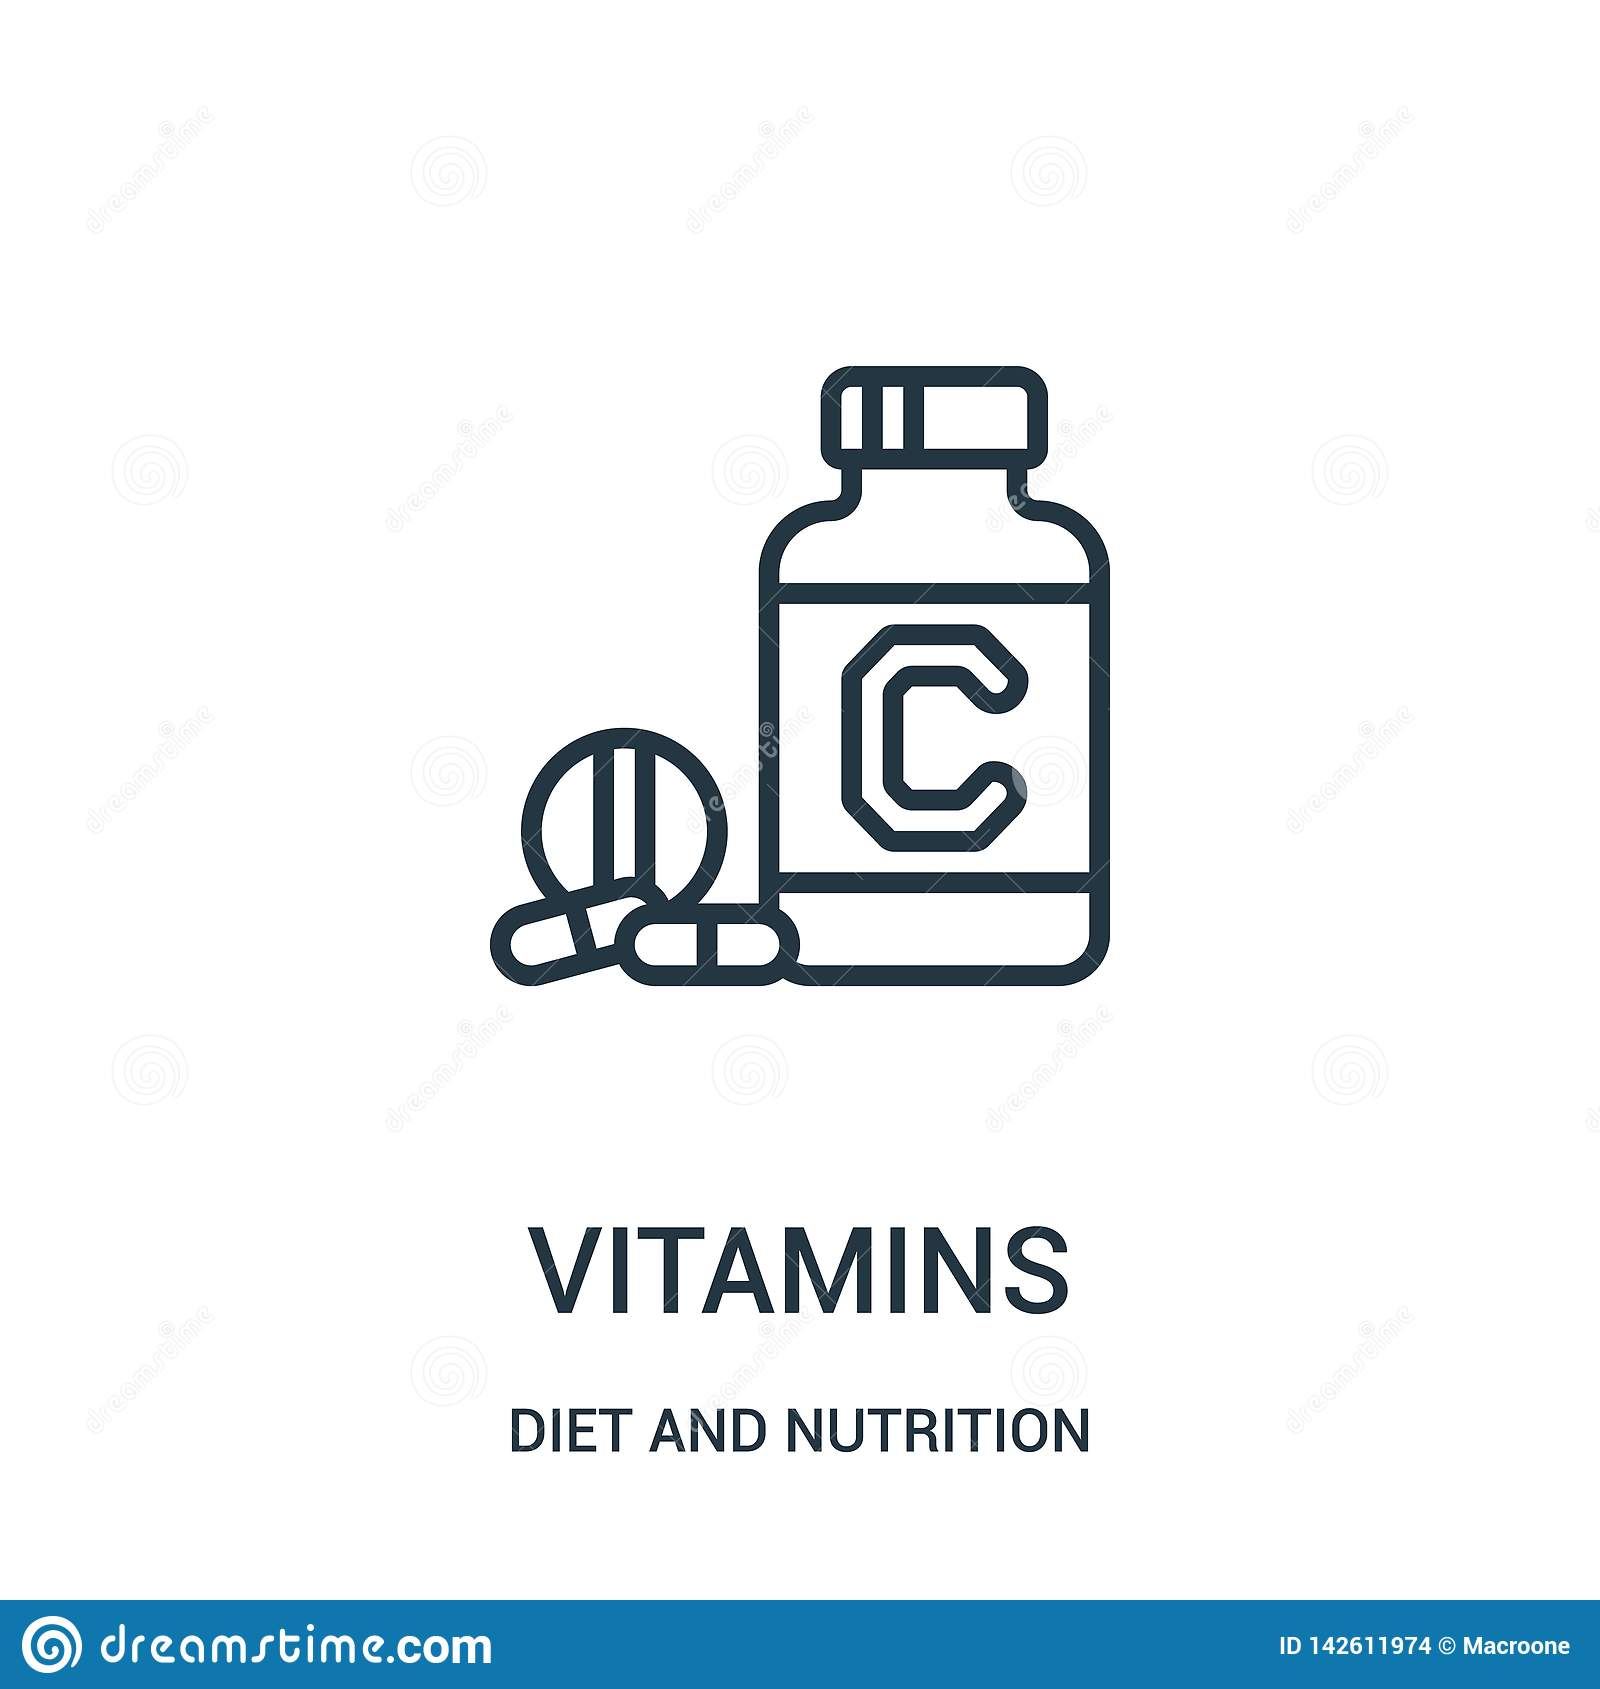 vitamins icon vector from diet and nutrition collection. Thin line vitamins outline icon vector illustration. Linear symbol